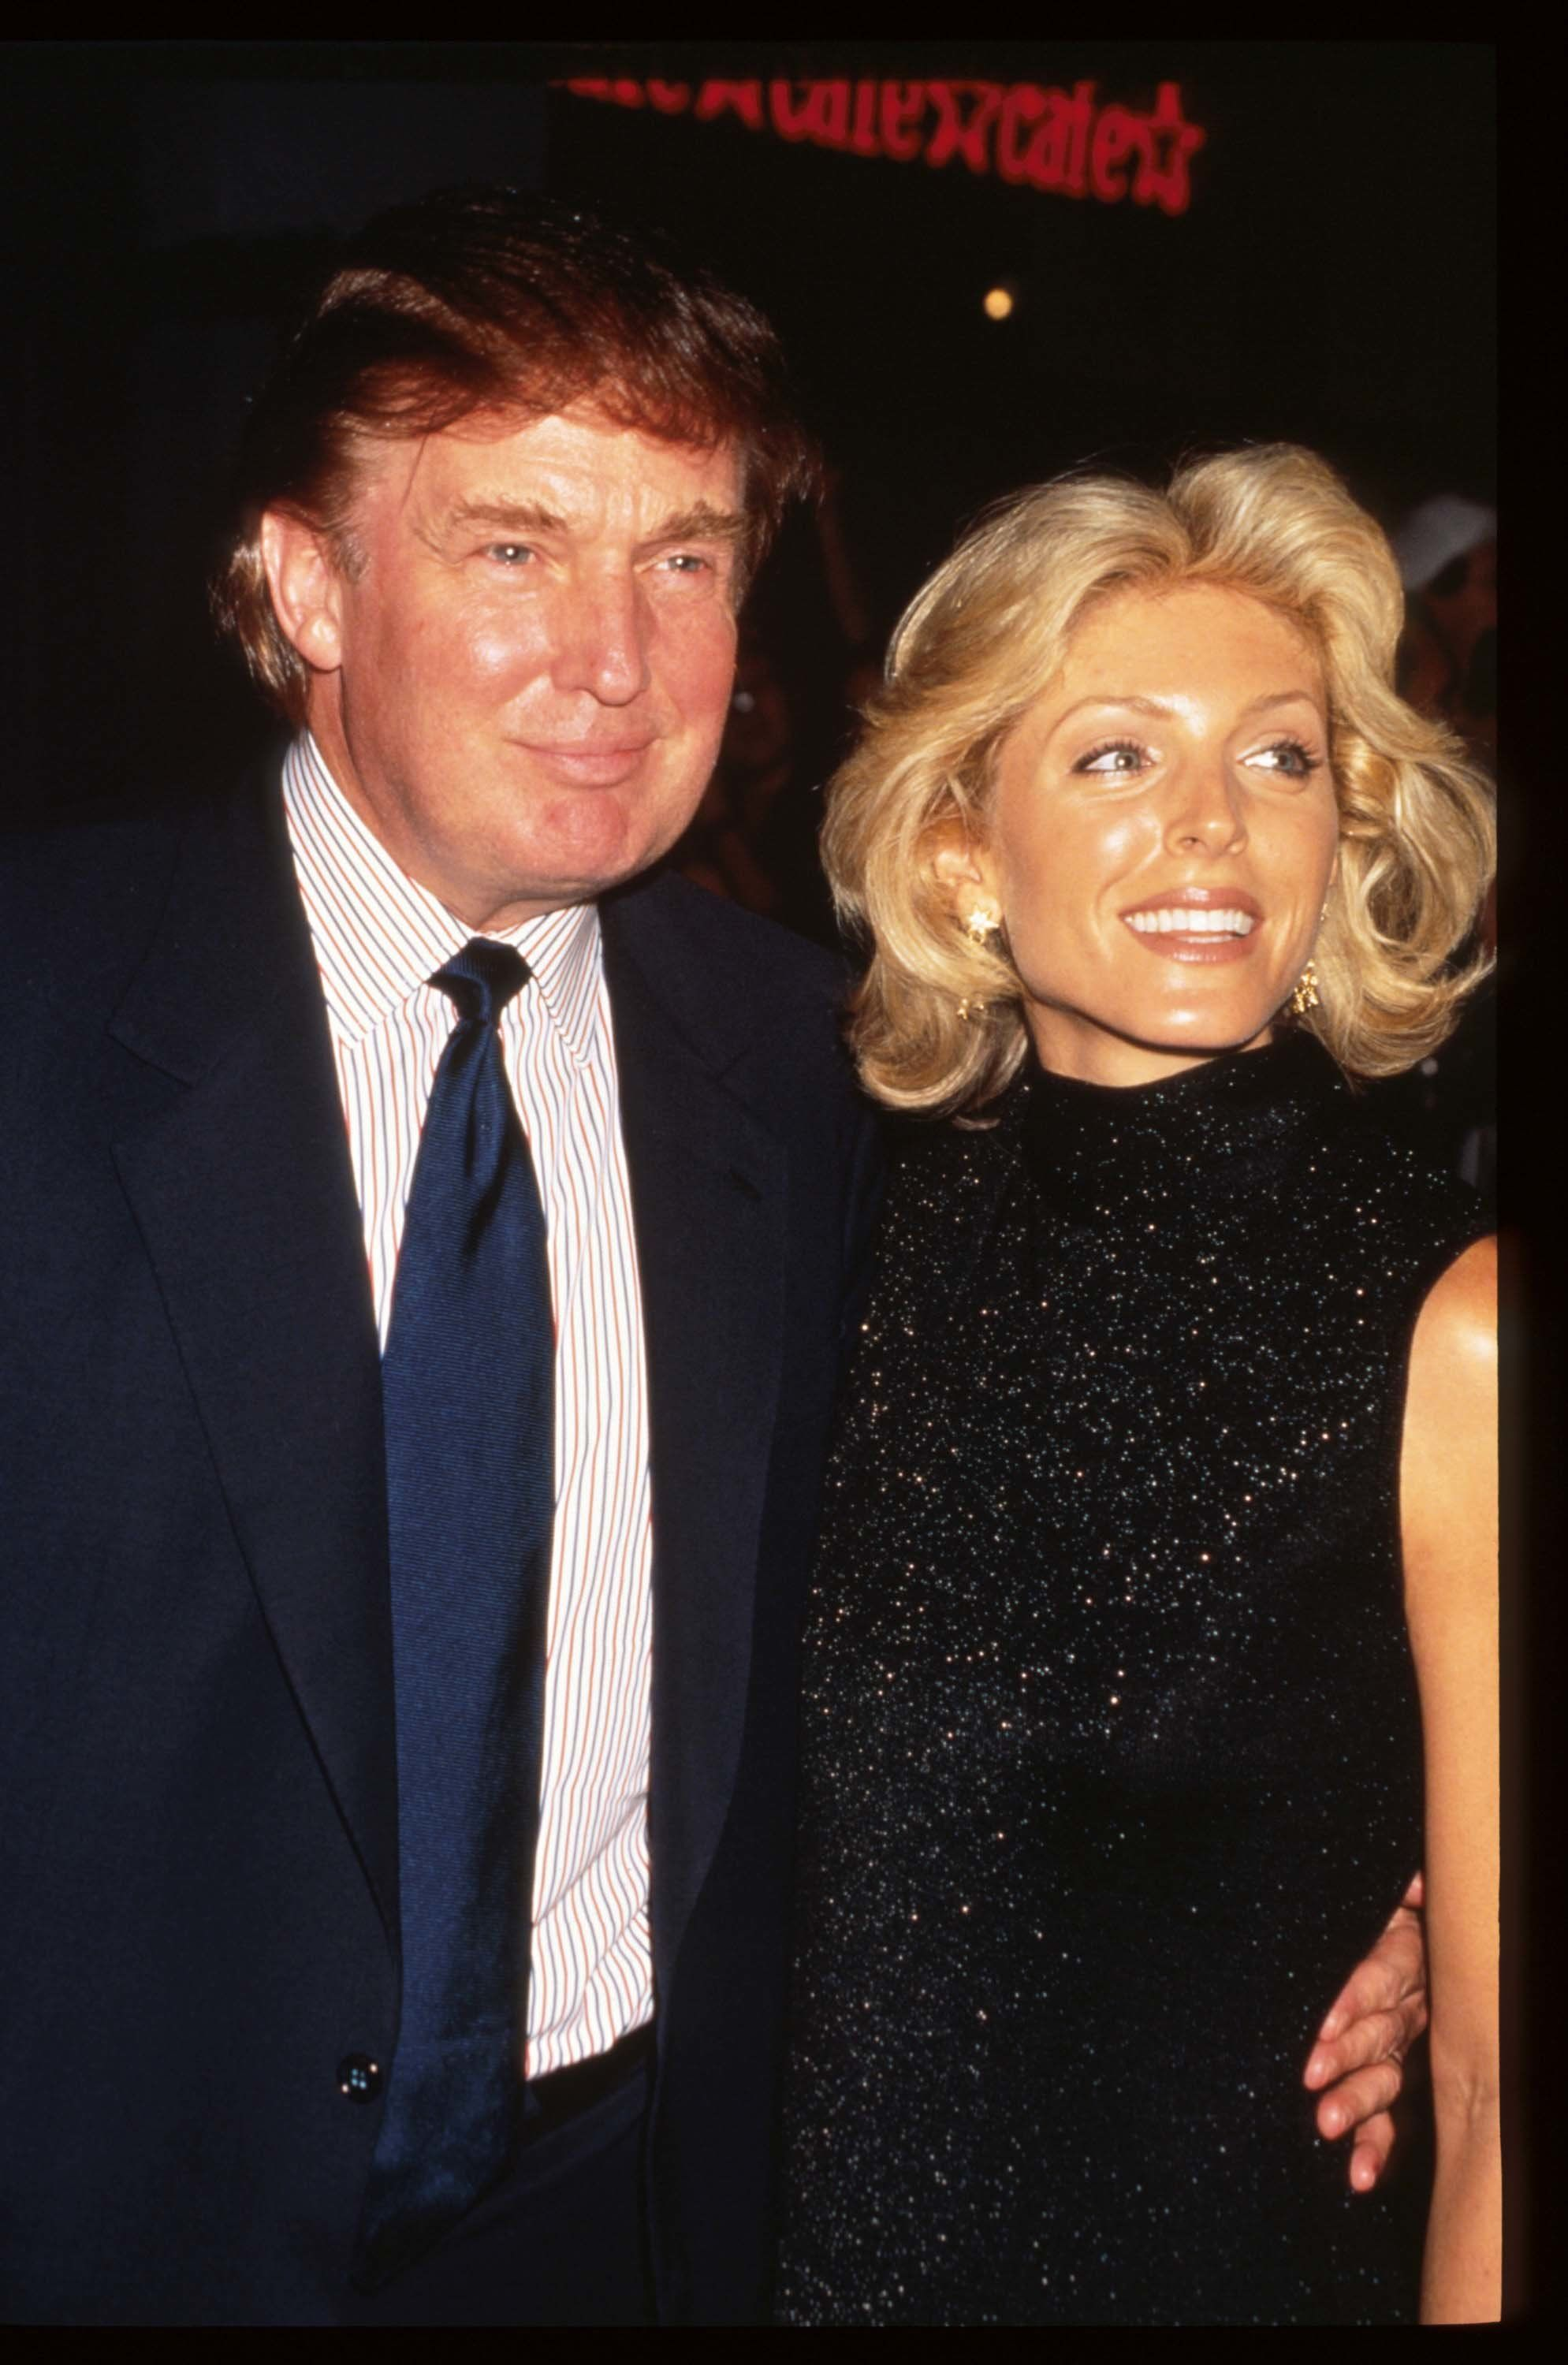 Trump and Maples at a movie premiere in 1996.